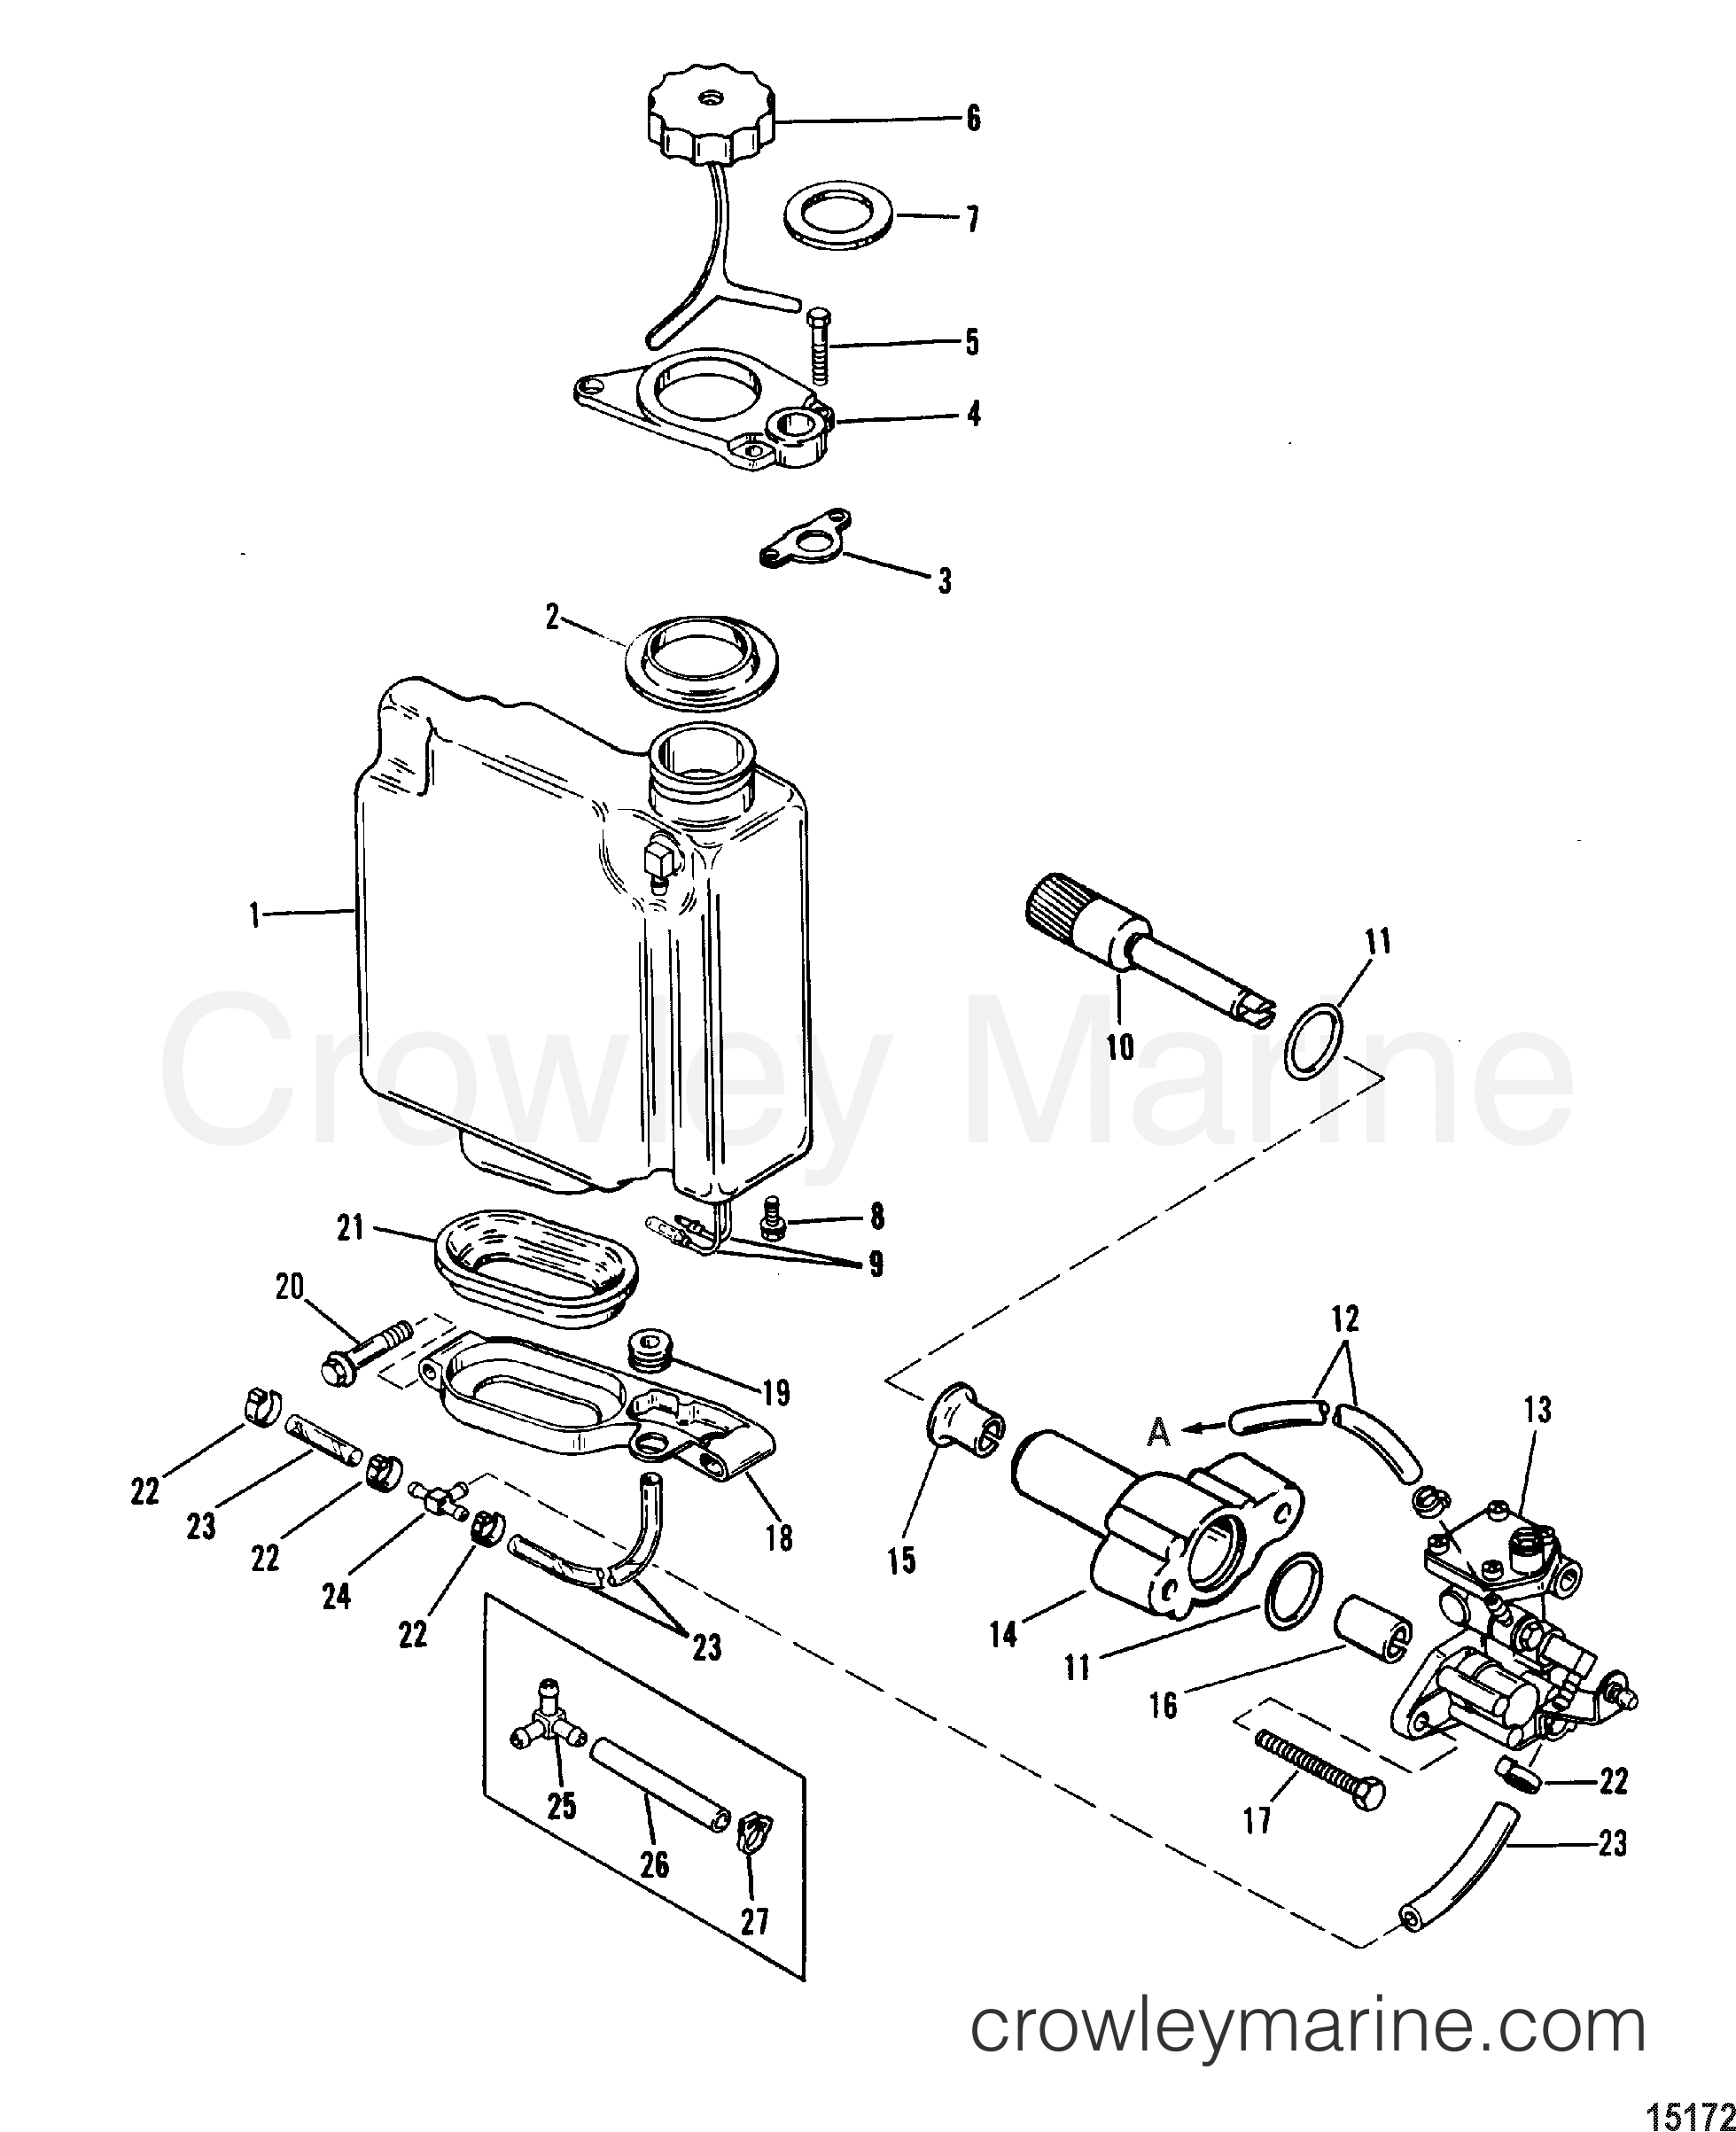 Oil Injection Components